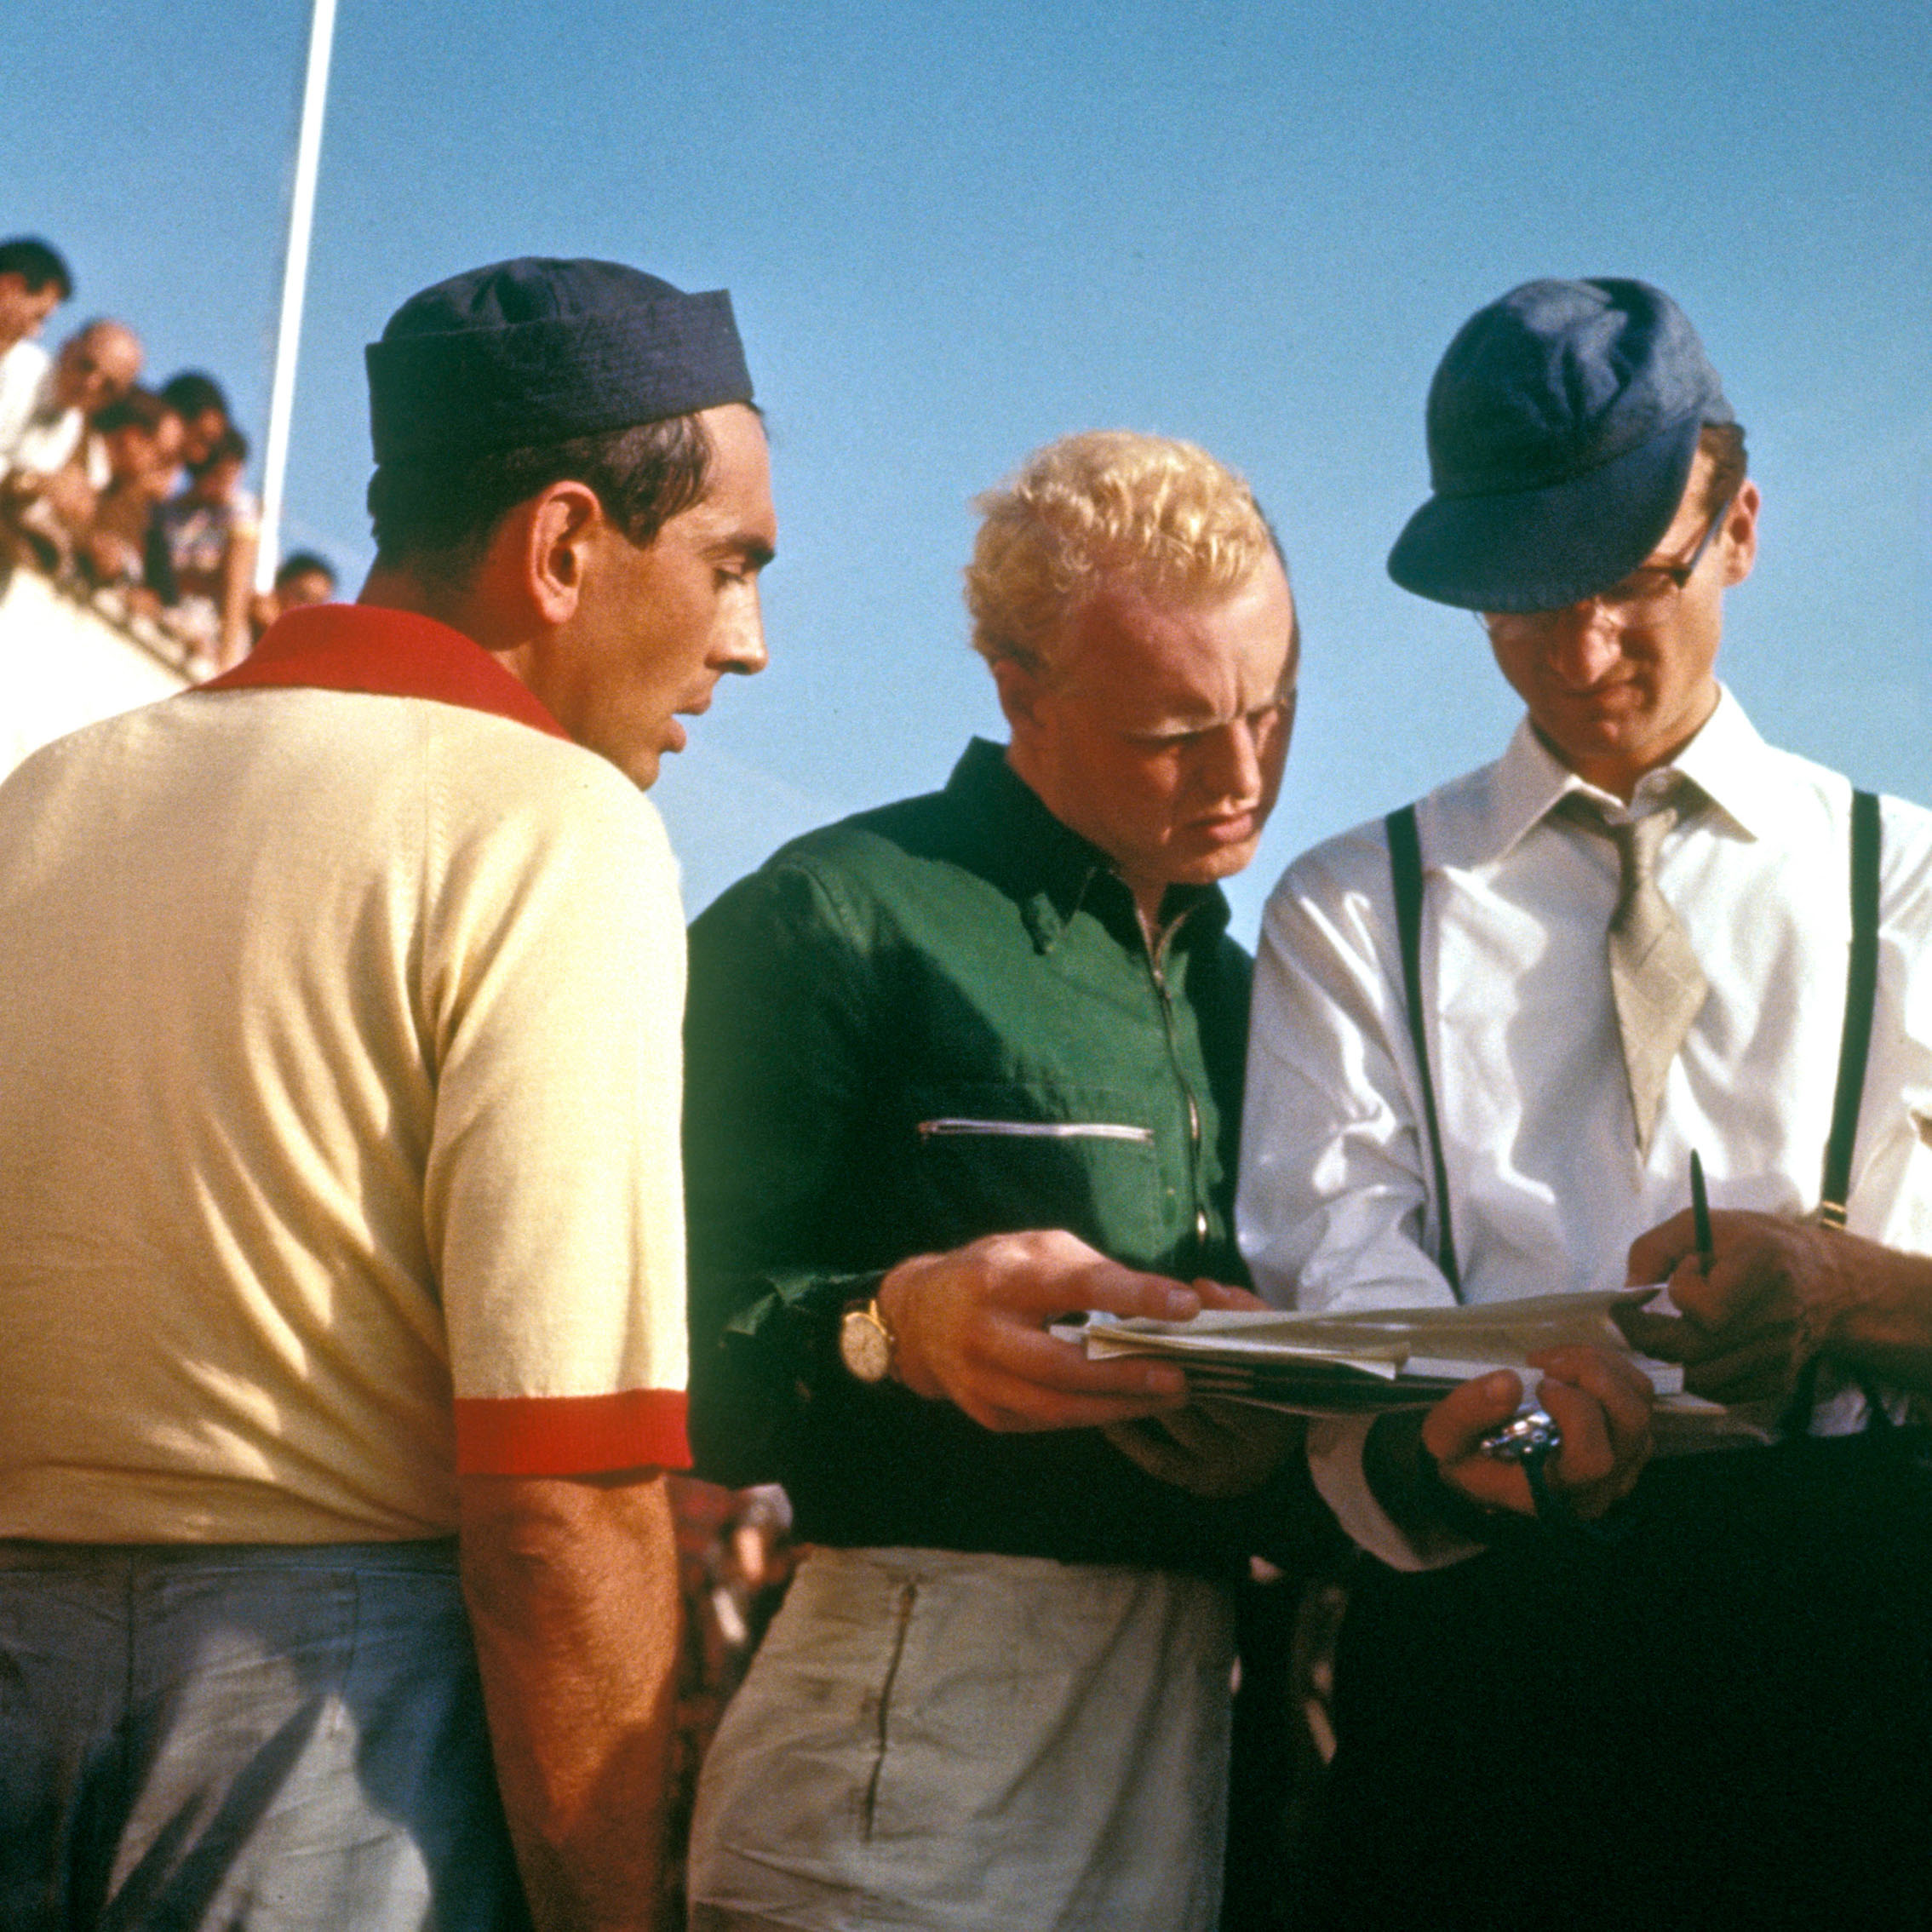 Luigi-Musso-with-Mike-Hawthorn-and-Romolo-Tavoni